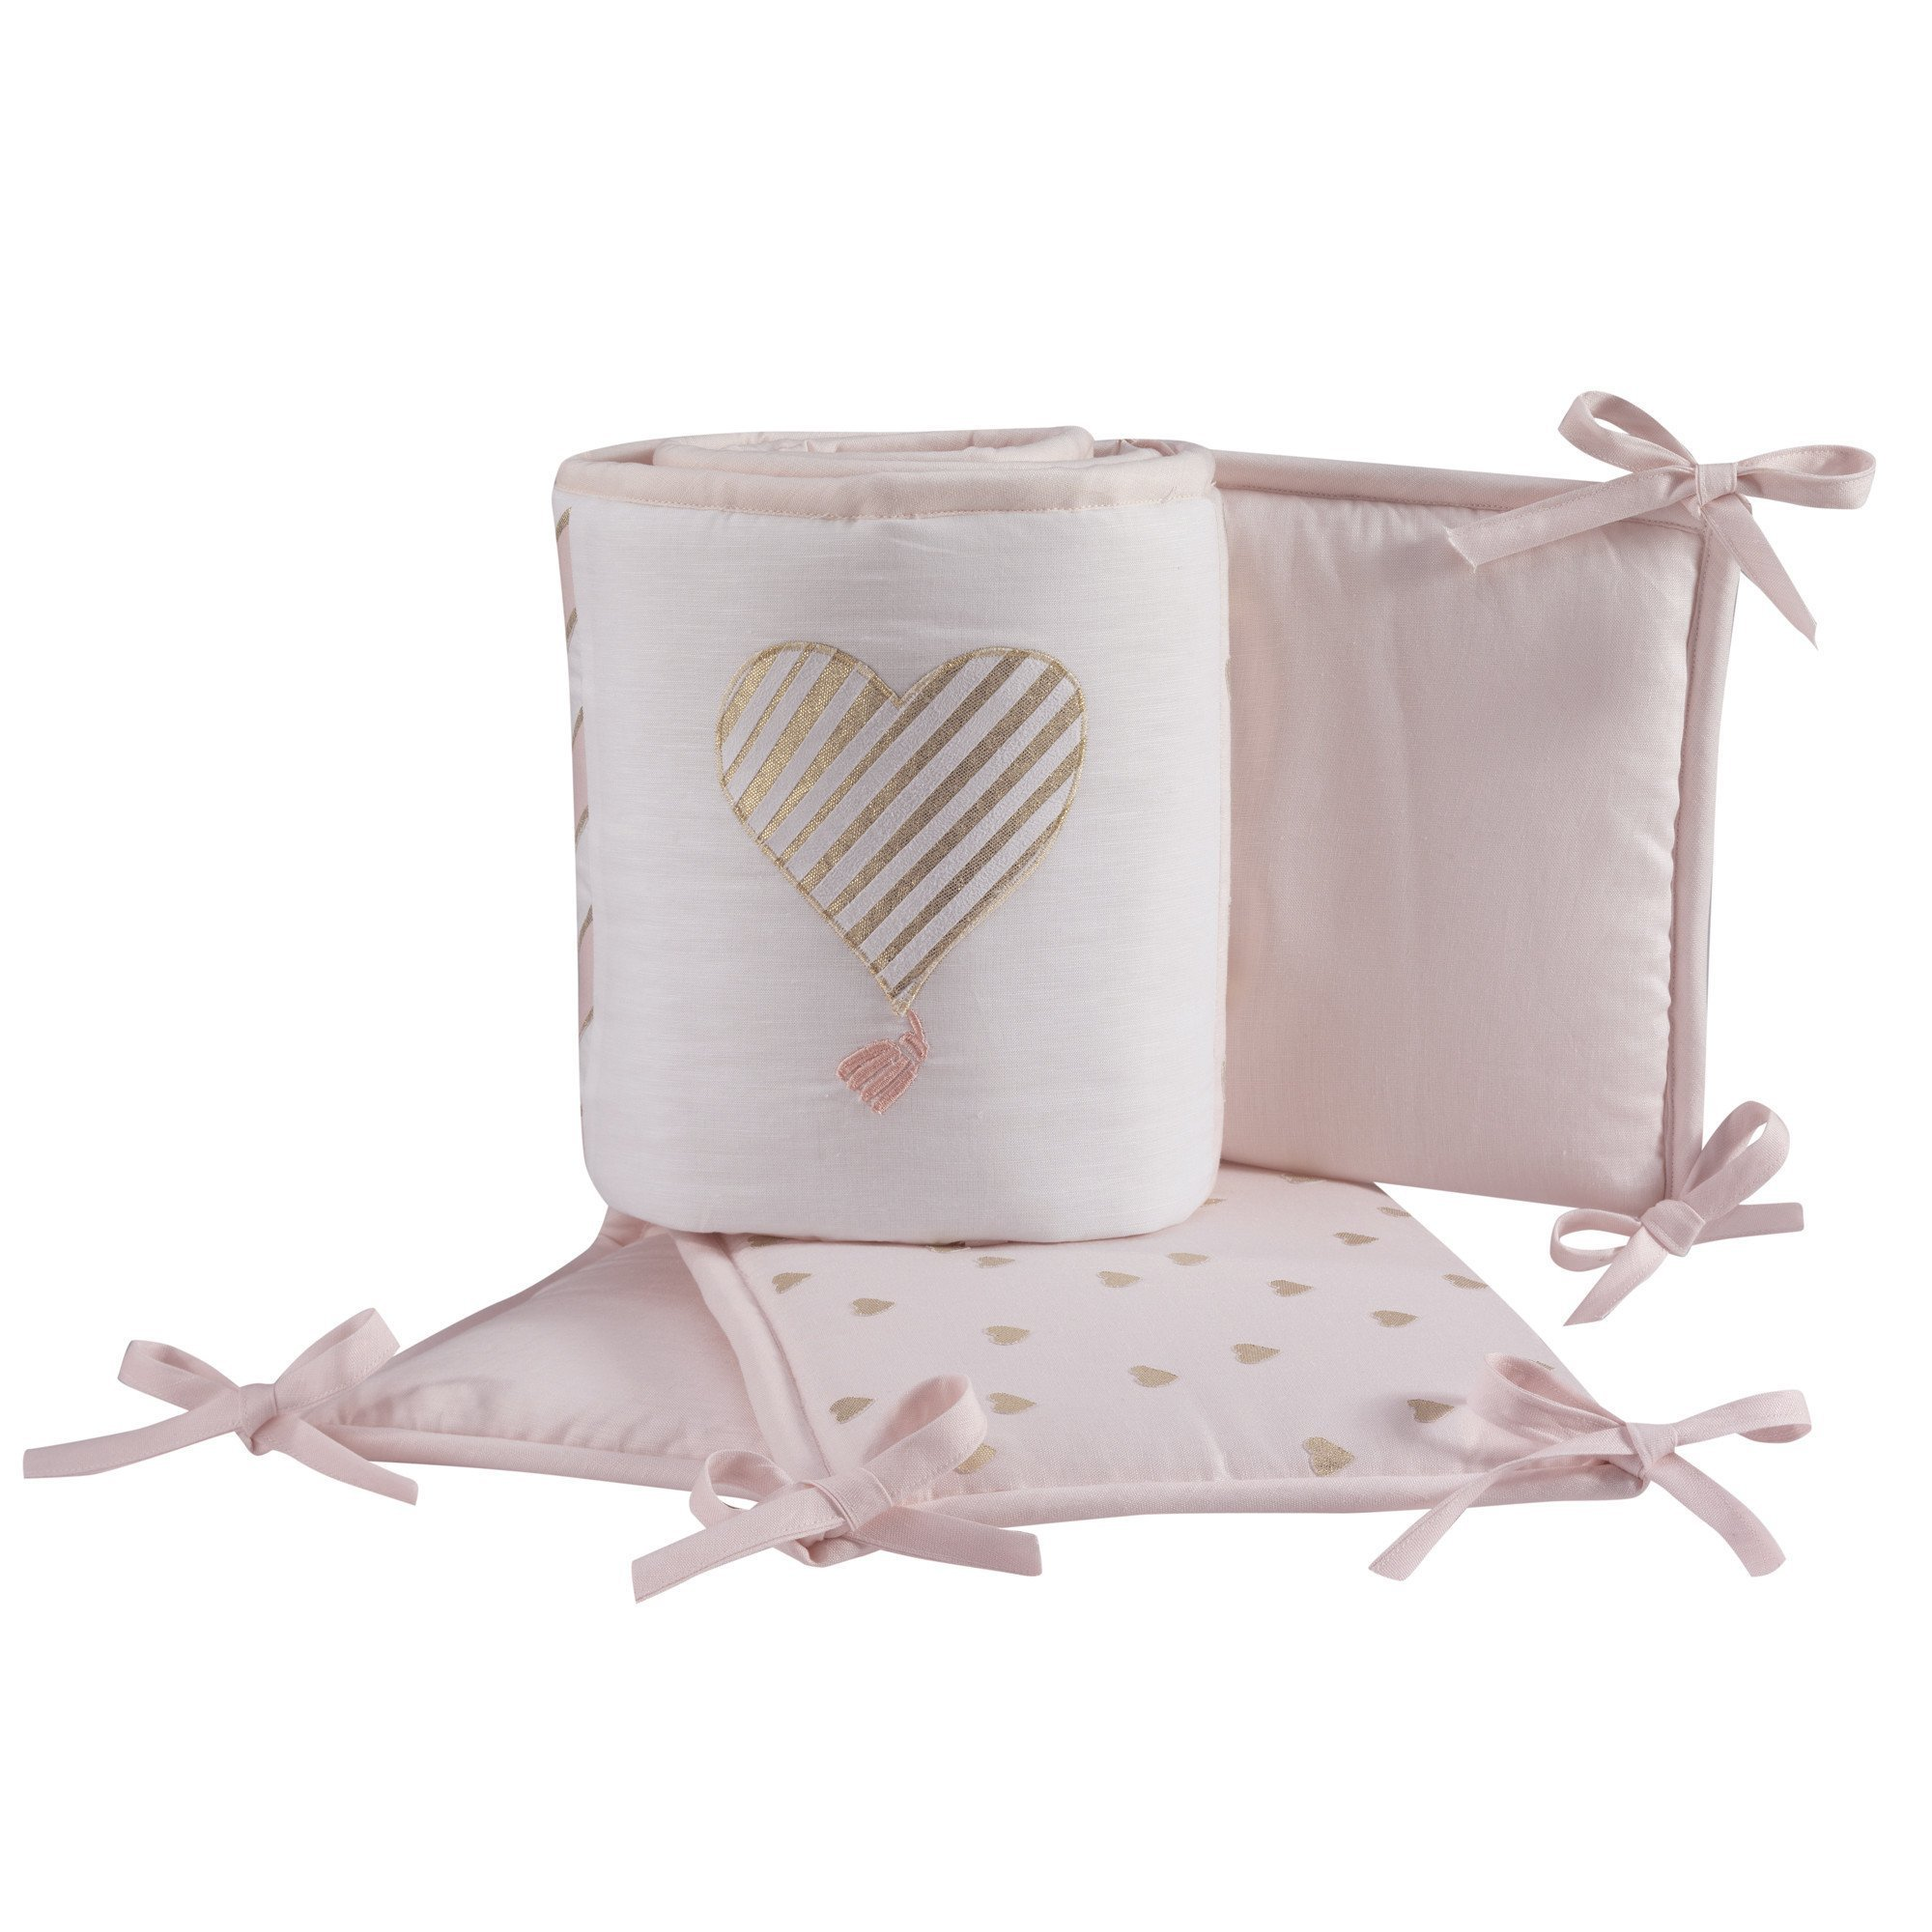 Lambs & Ivy Baby Love 4-Piece Crib Bumper - Pink/Gold/White with Hearts